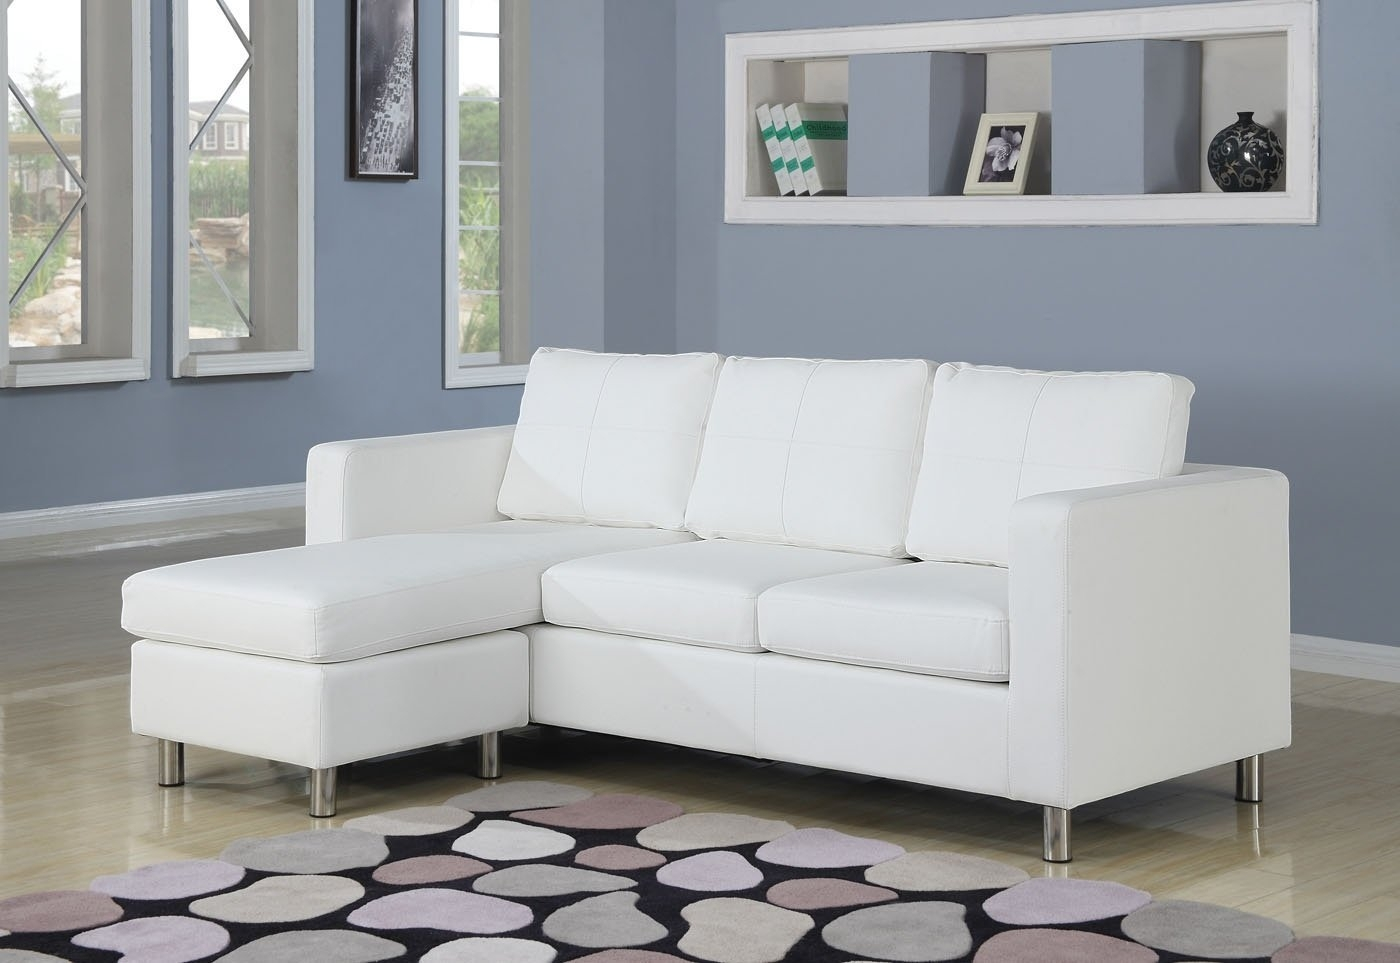 Style For Small Sectional Sofa The Home Redesign With Chaise Couch throughout Avery 2 Piece Sectionals With Laf Armless Chaise (Image 30 of 30)